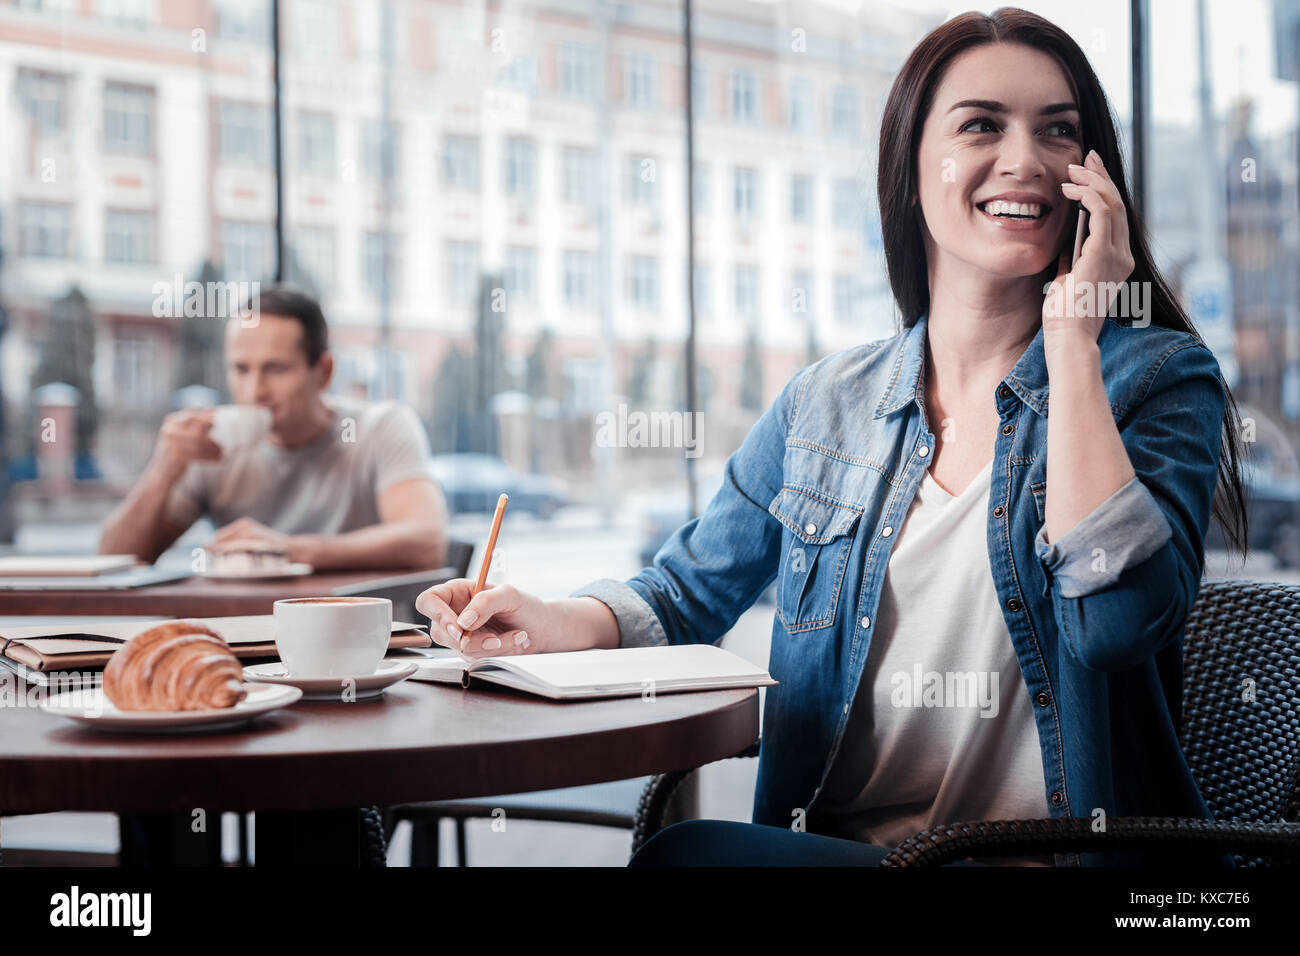 Happy female person making notes - Stock Image